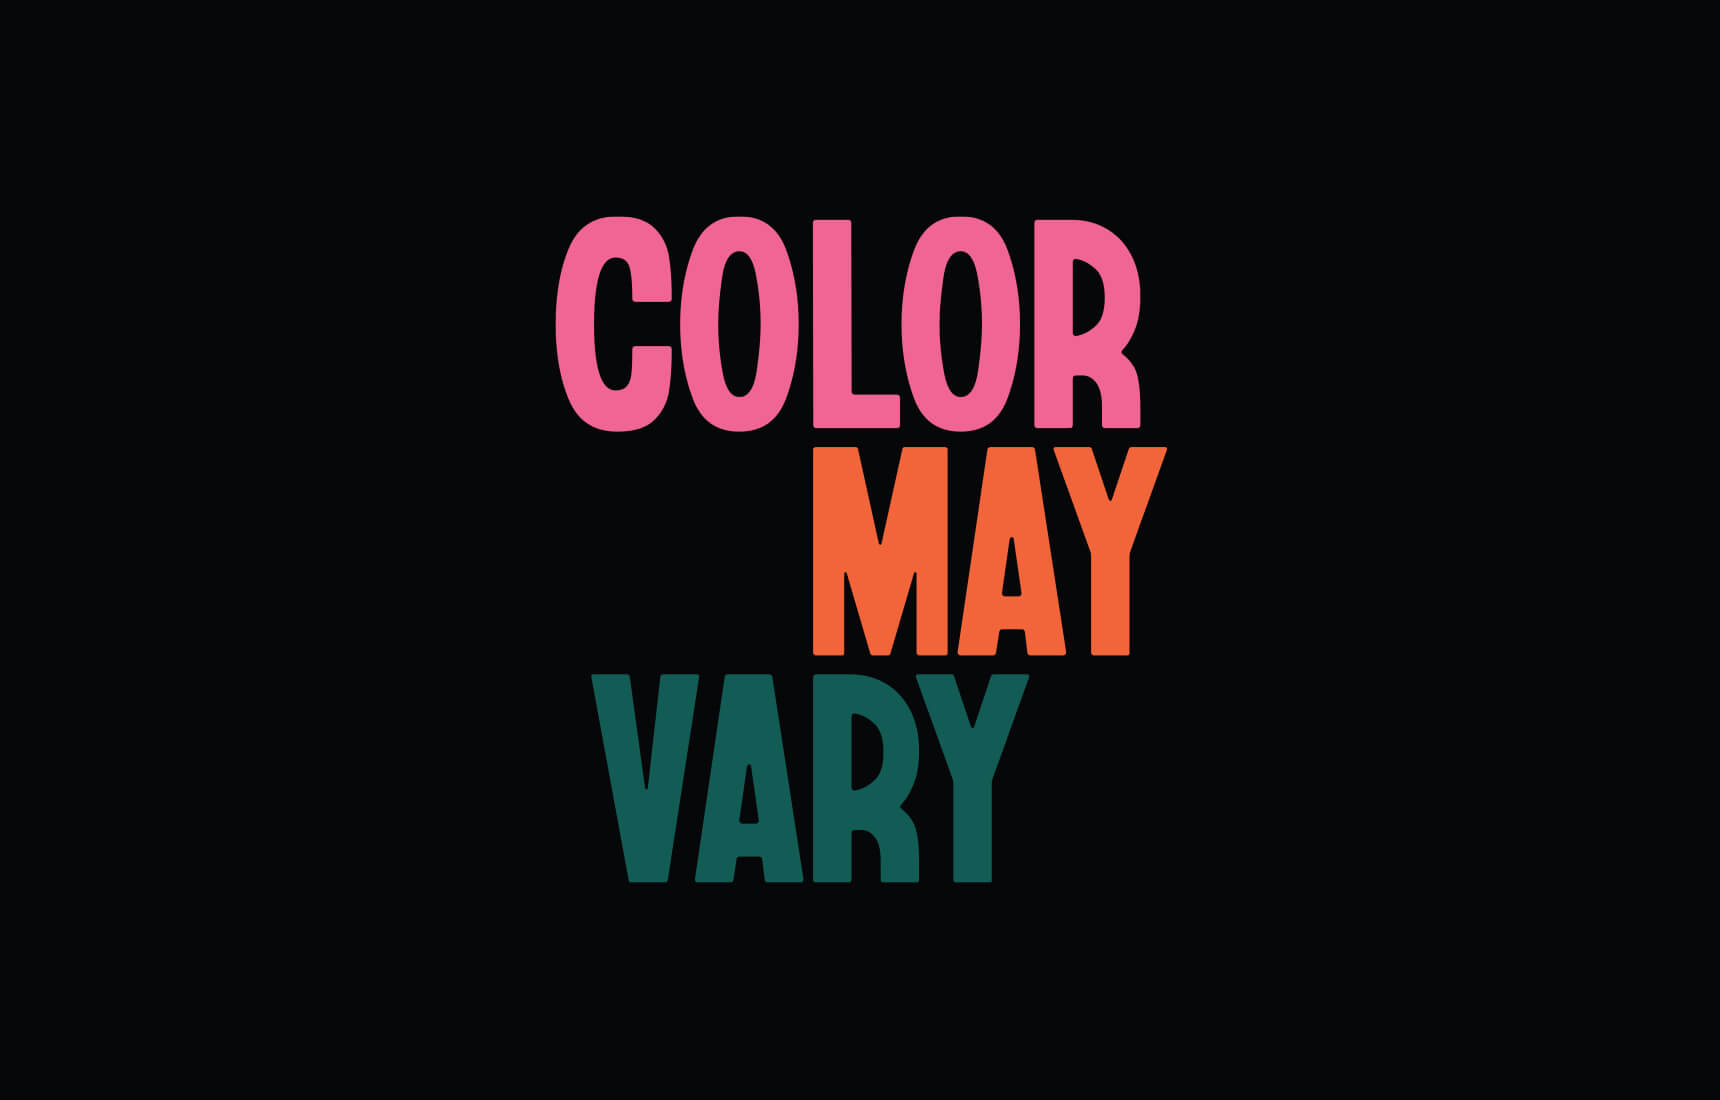 Color May Vary